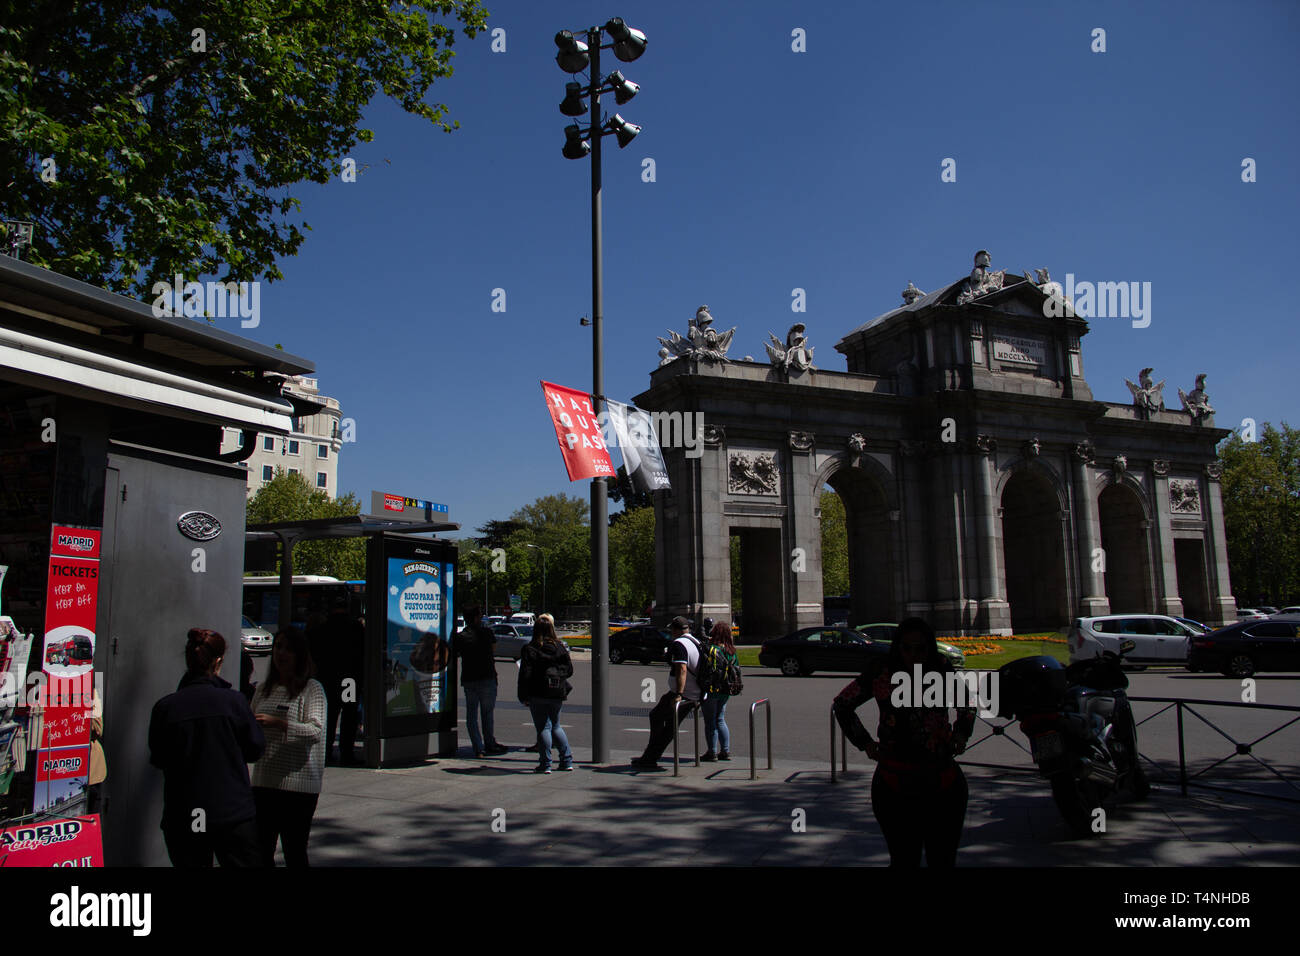 Madrid, Spain - 04 12 2019: Political campaign banners of the socialistic party PSOE in the wind, showing their lead candidate for president  Pedro Sa - Stock Image